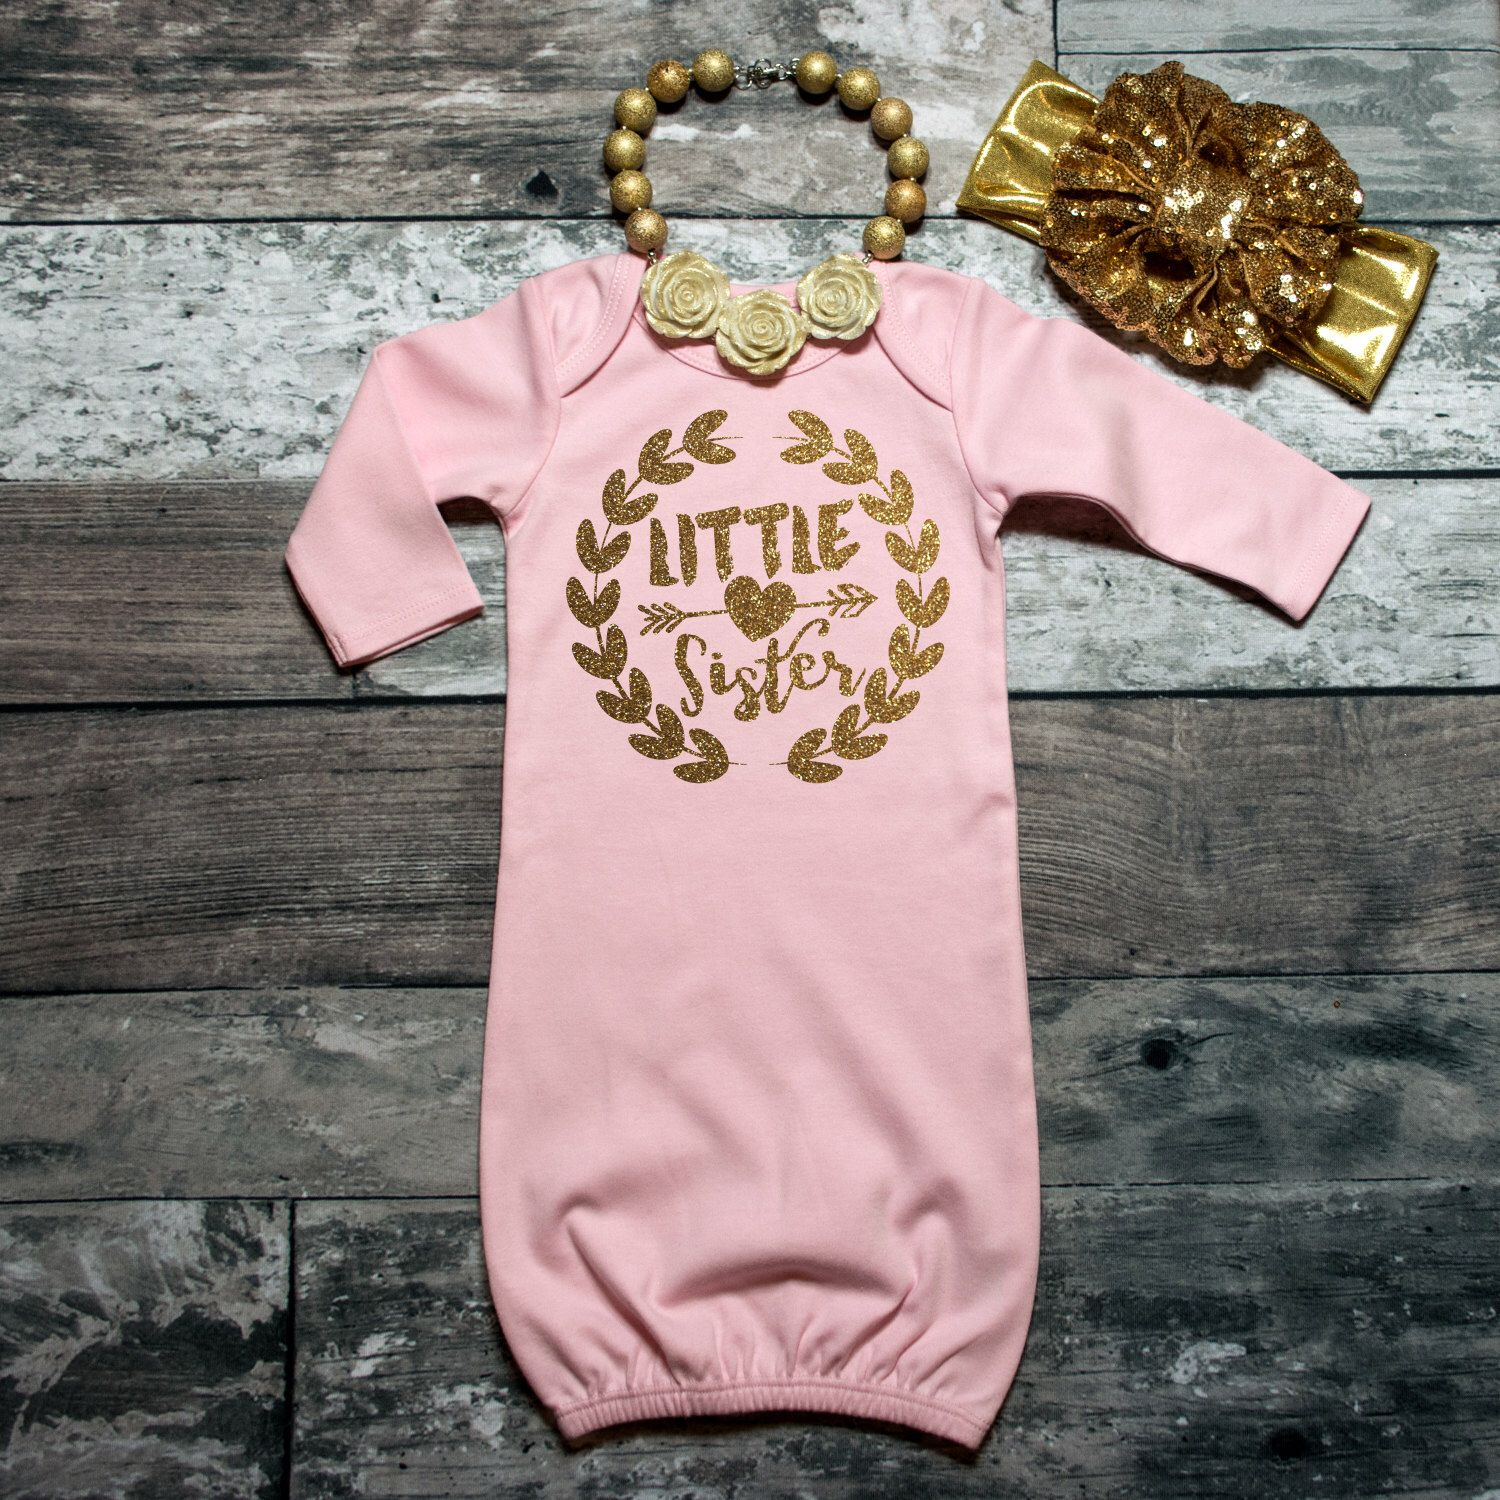 new pin shirt baby little coming glitter girl newborn gold sister gown